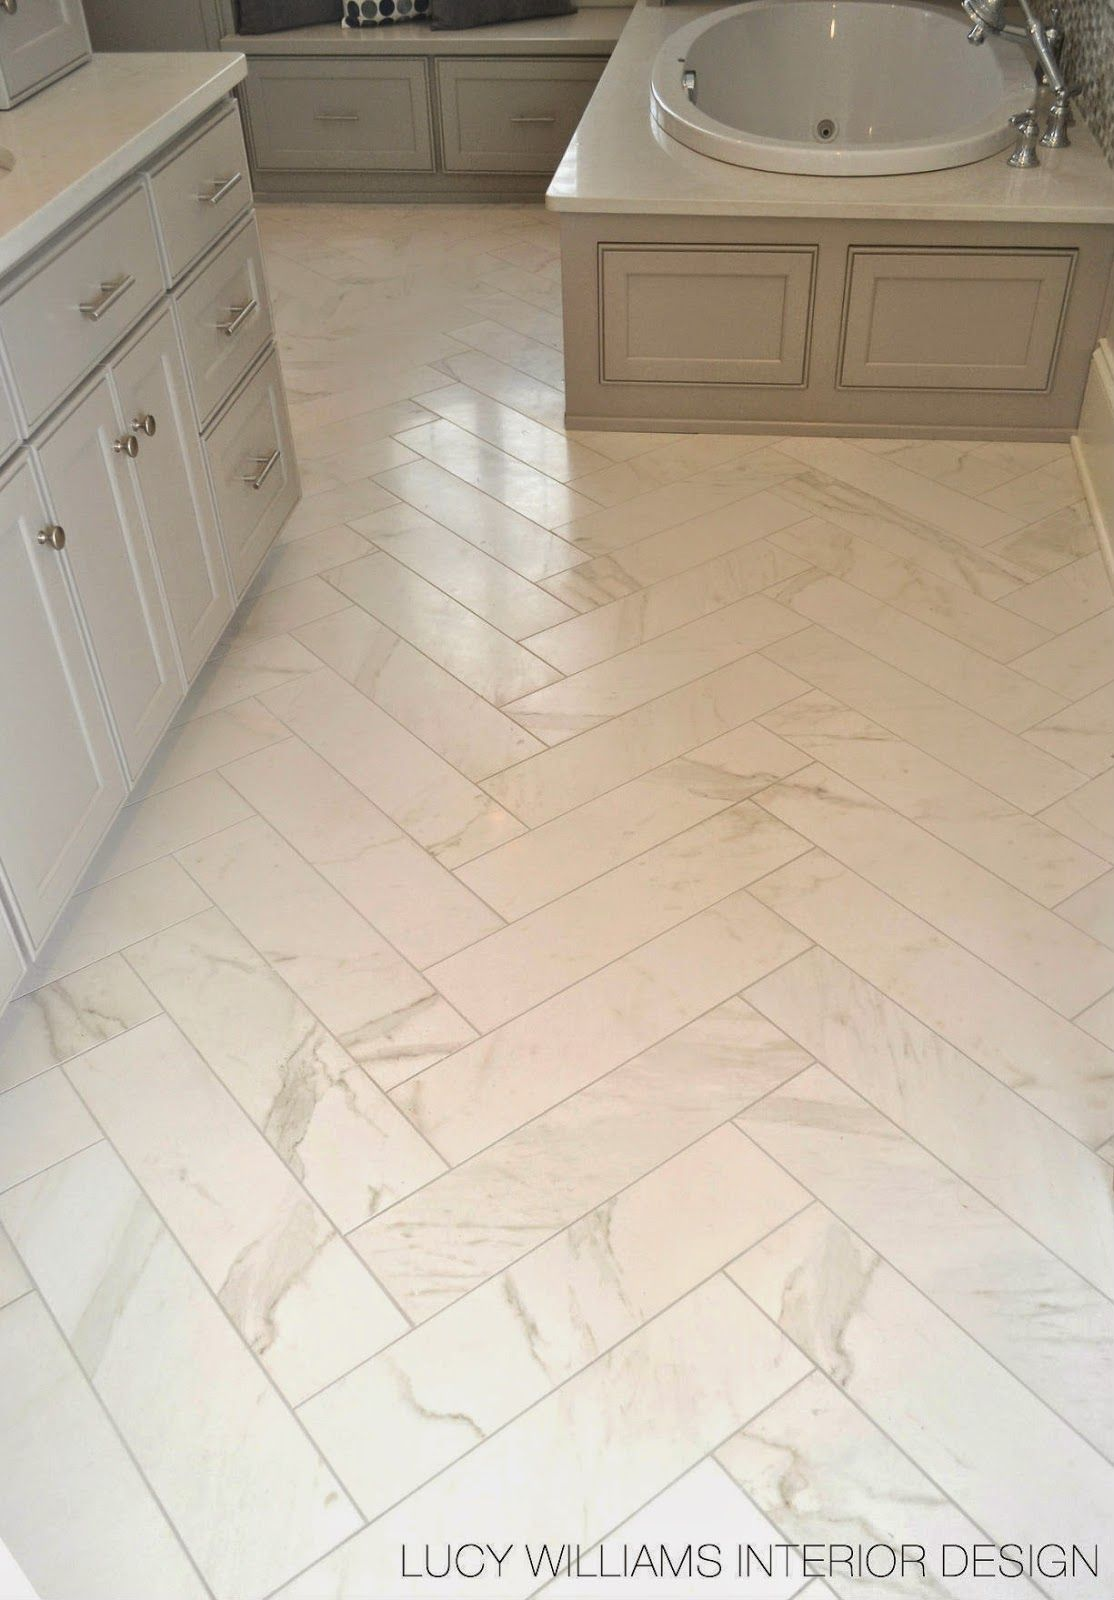 Porcelain Floor Tile Looks Like Marble But Without The Maintenance Via Lucy Williams Interior Design